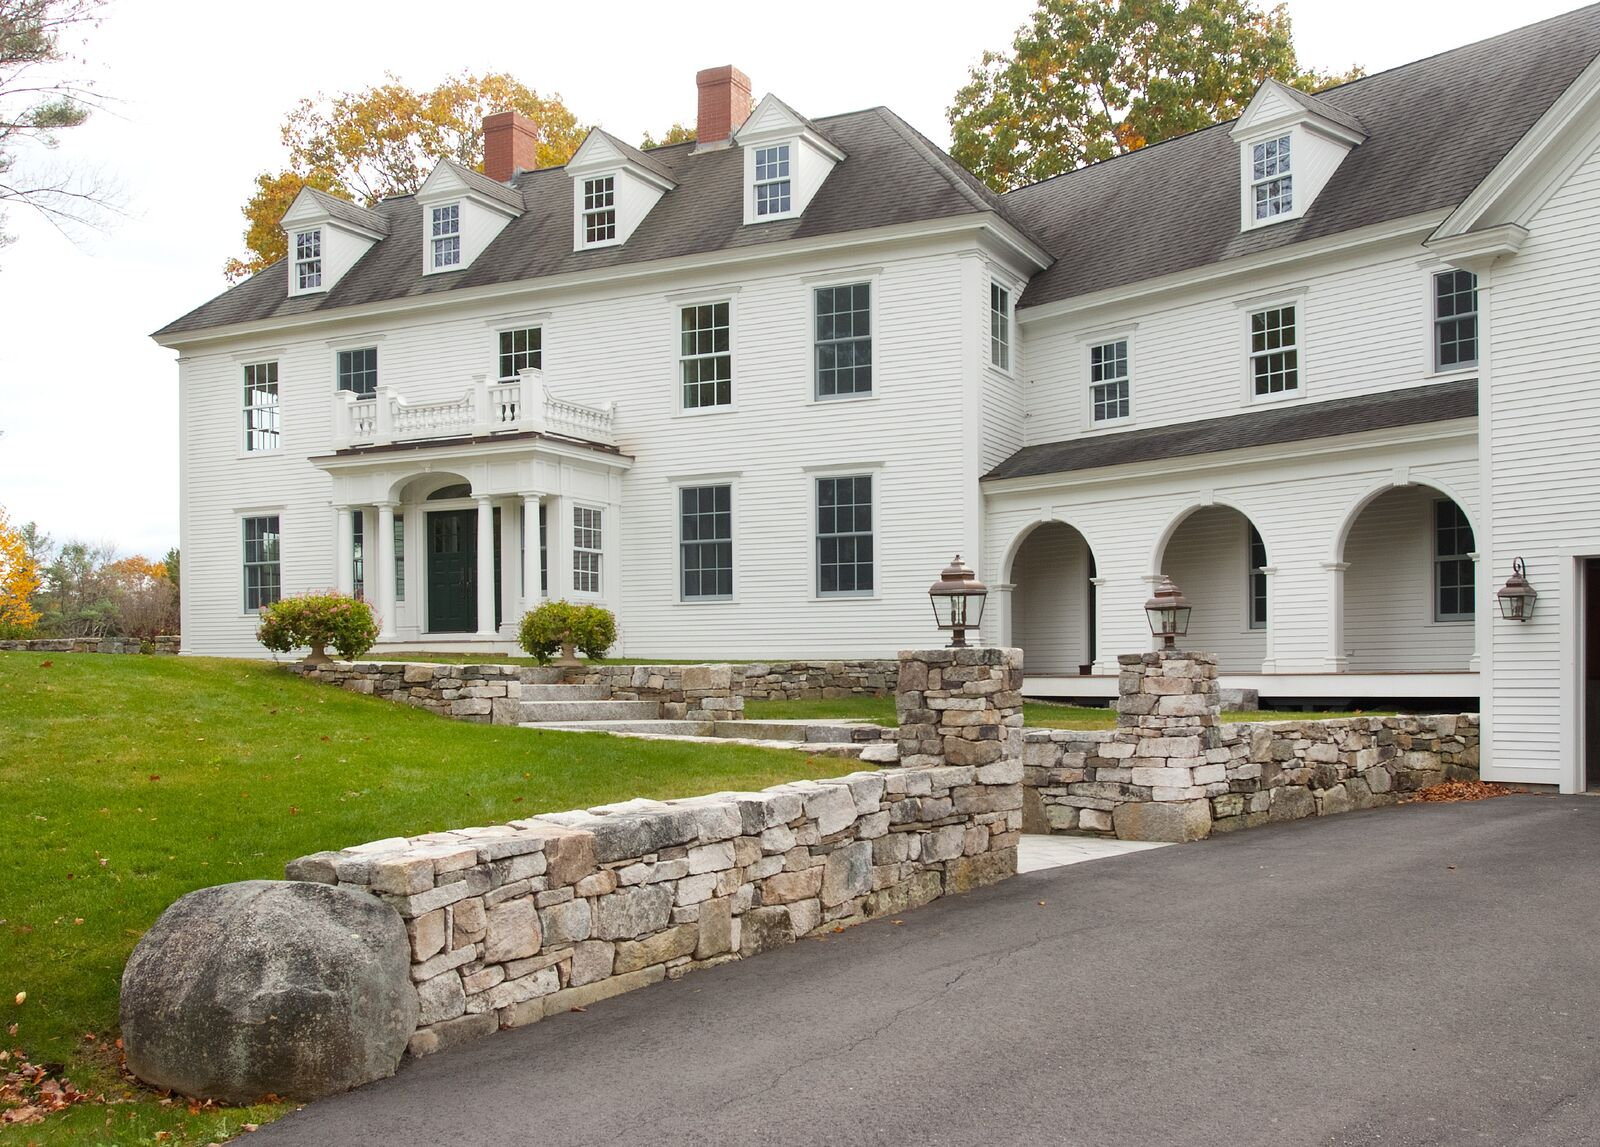 Classic Colonial Homes And The New England Stone That Give